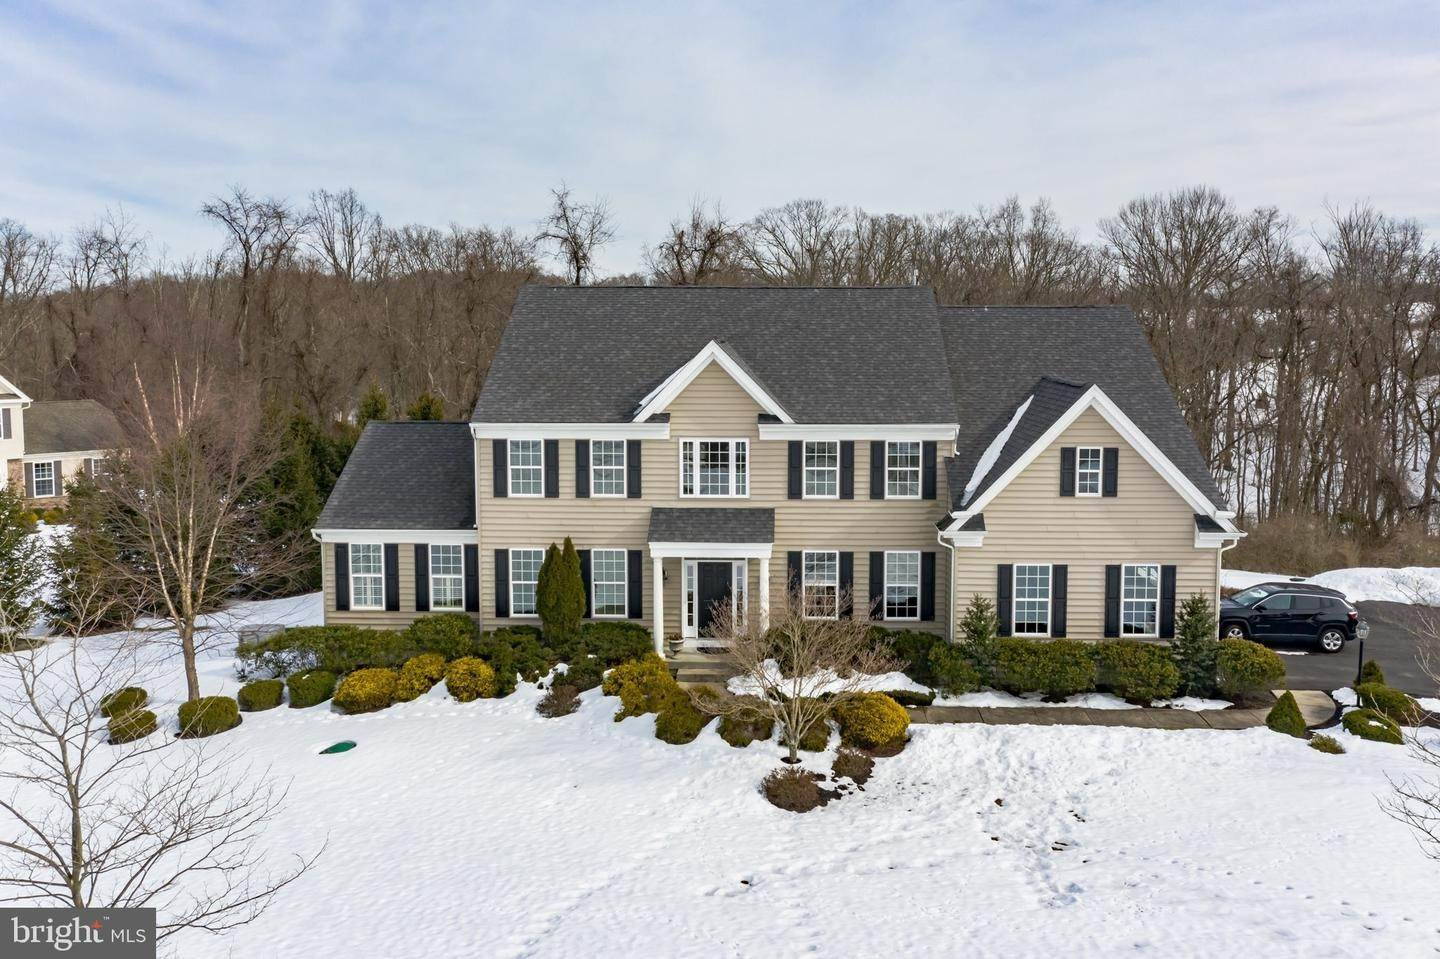 7. Detached House for Sale at 1511 BRAY Lane Washington Crossing, Pennsylvania 18977 United States